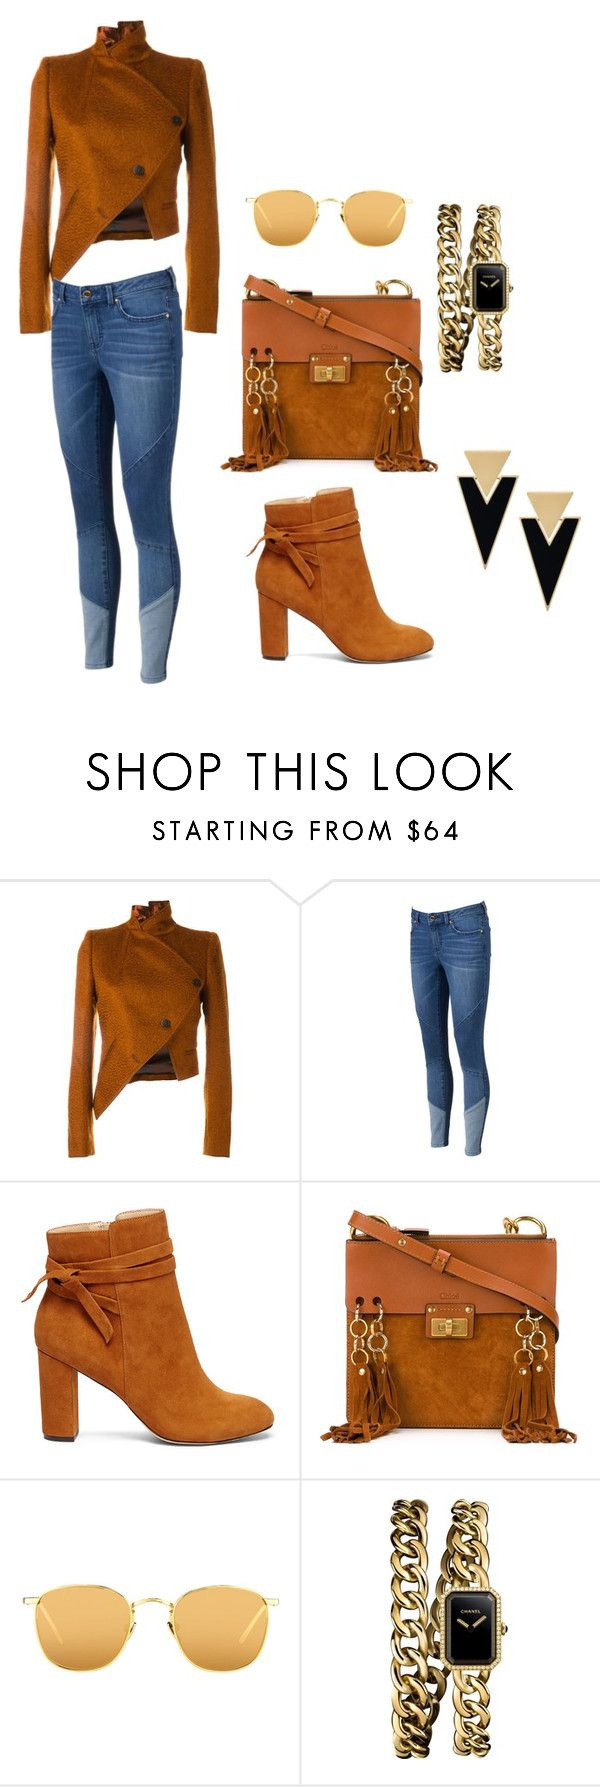 """casual brown"" by riesta-divanda-devi-chattleya on Polyvore featuring Ann Demeulemeester, Jennifer Lopez, Sole Society, Chloé, Linda Farrow, Chanel, Yves Saint Laurent and topic"